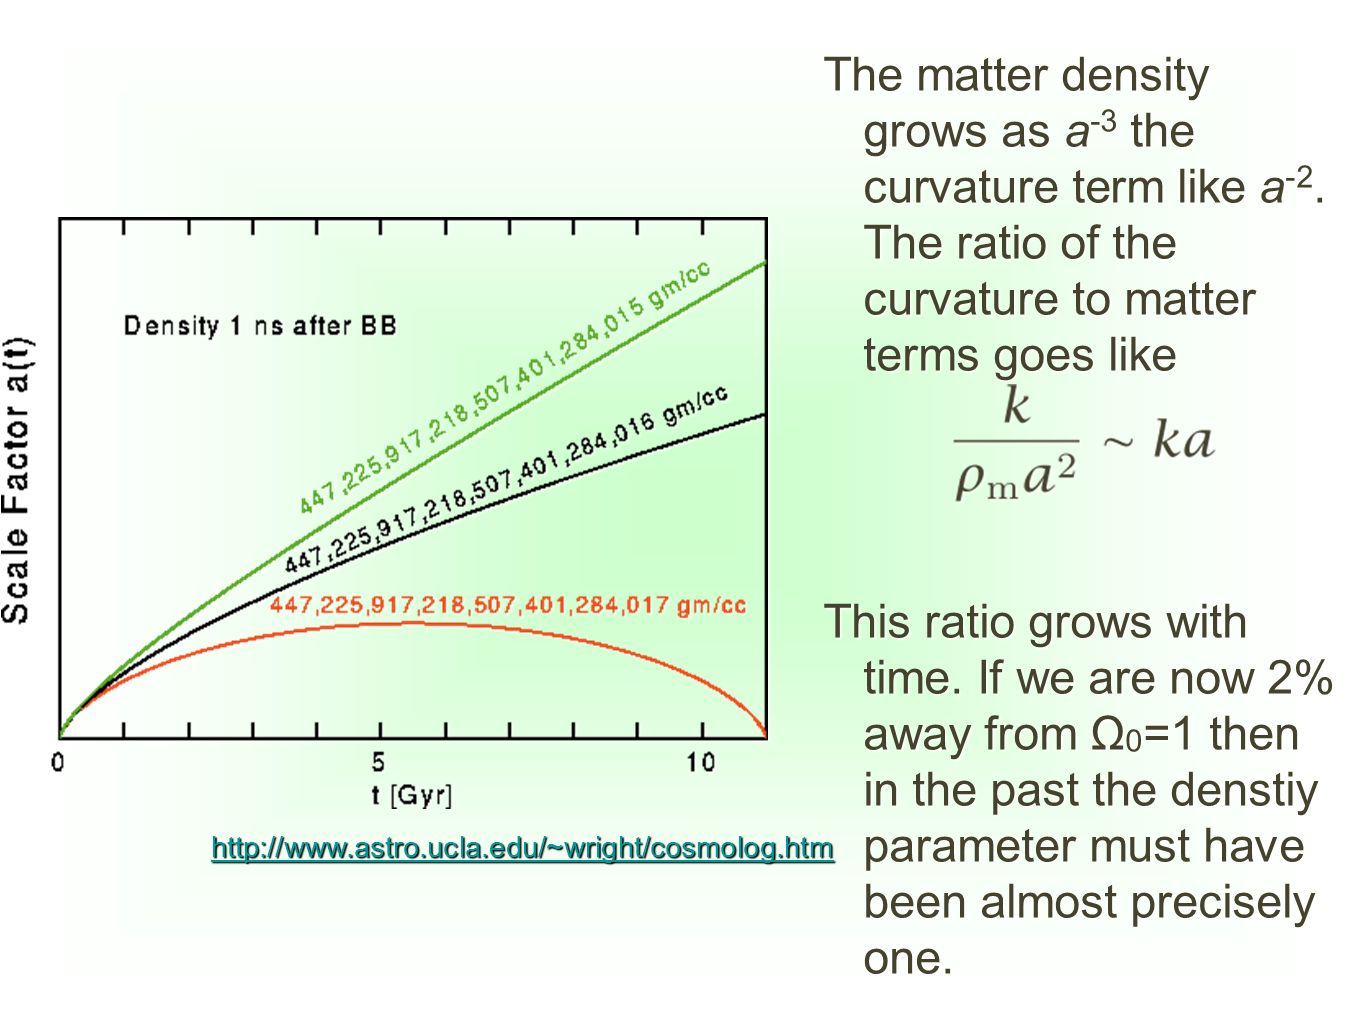 The matter density grows as a-3 the curvature term like a-2